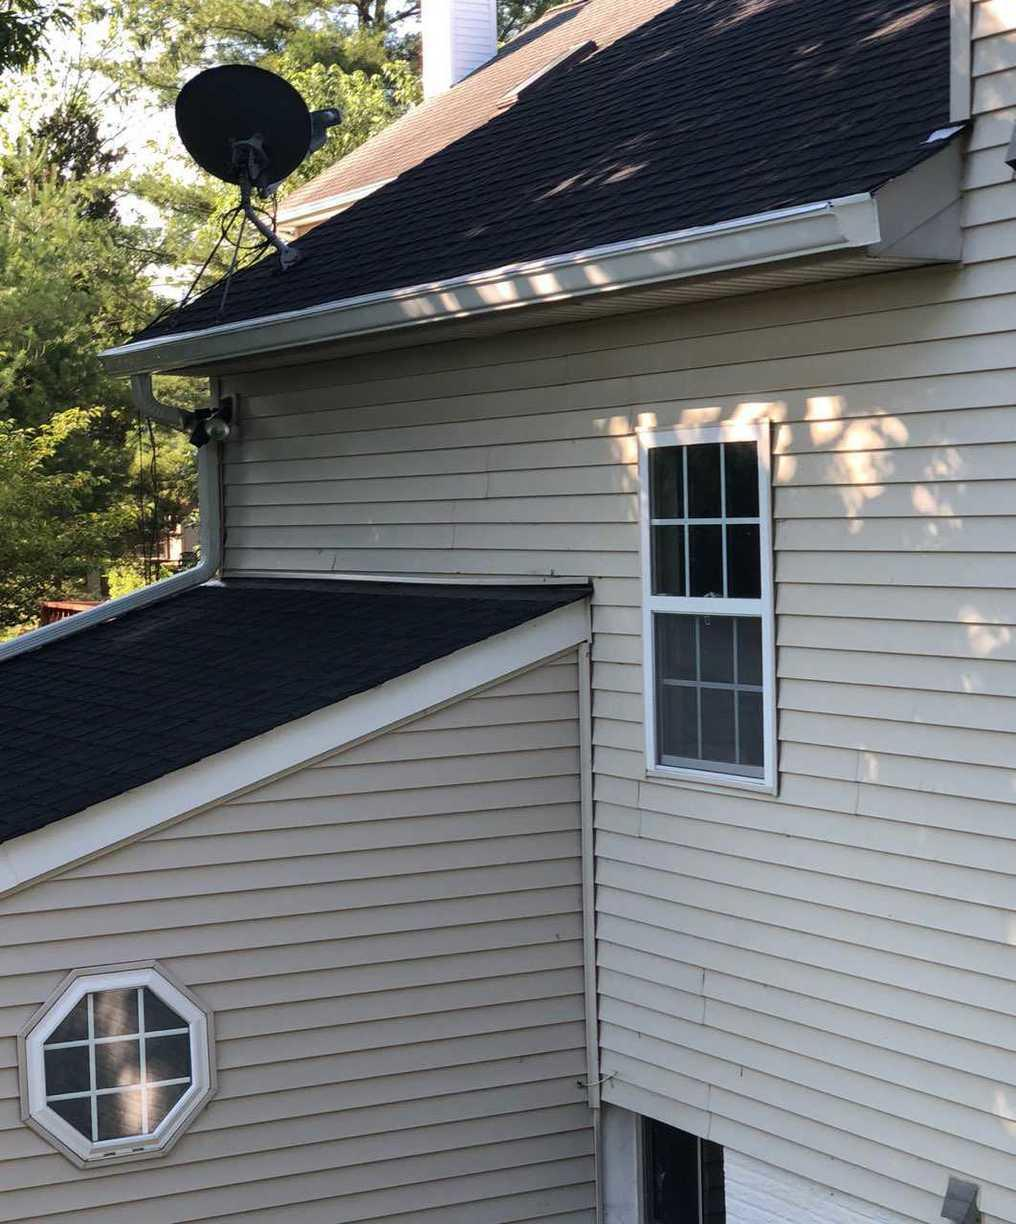 MasterShield Gutter System for home in Ashburn, VA.  - After Photo